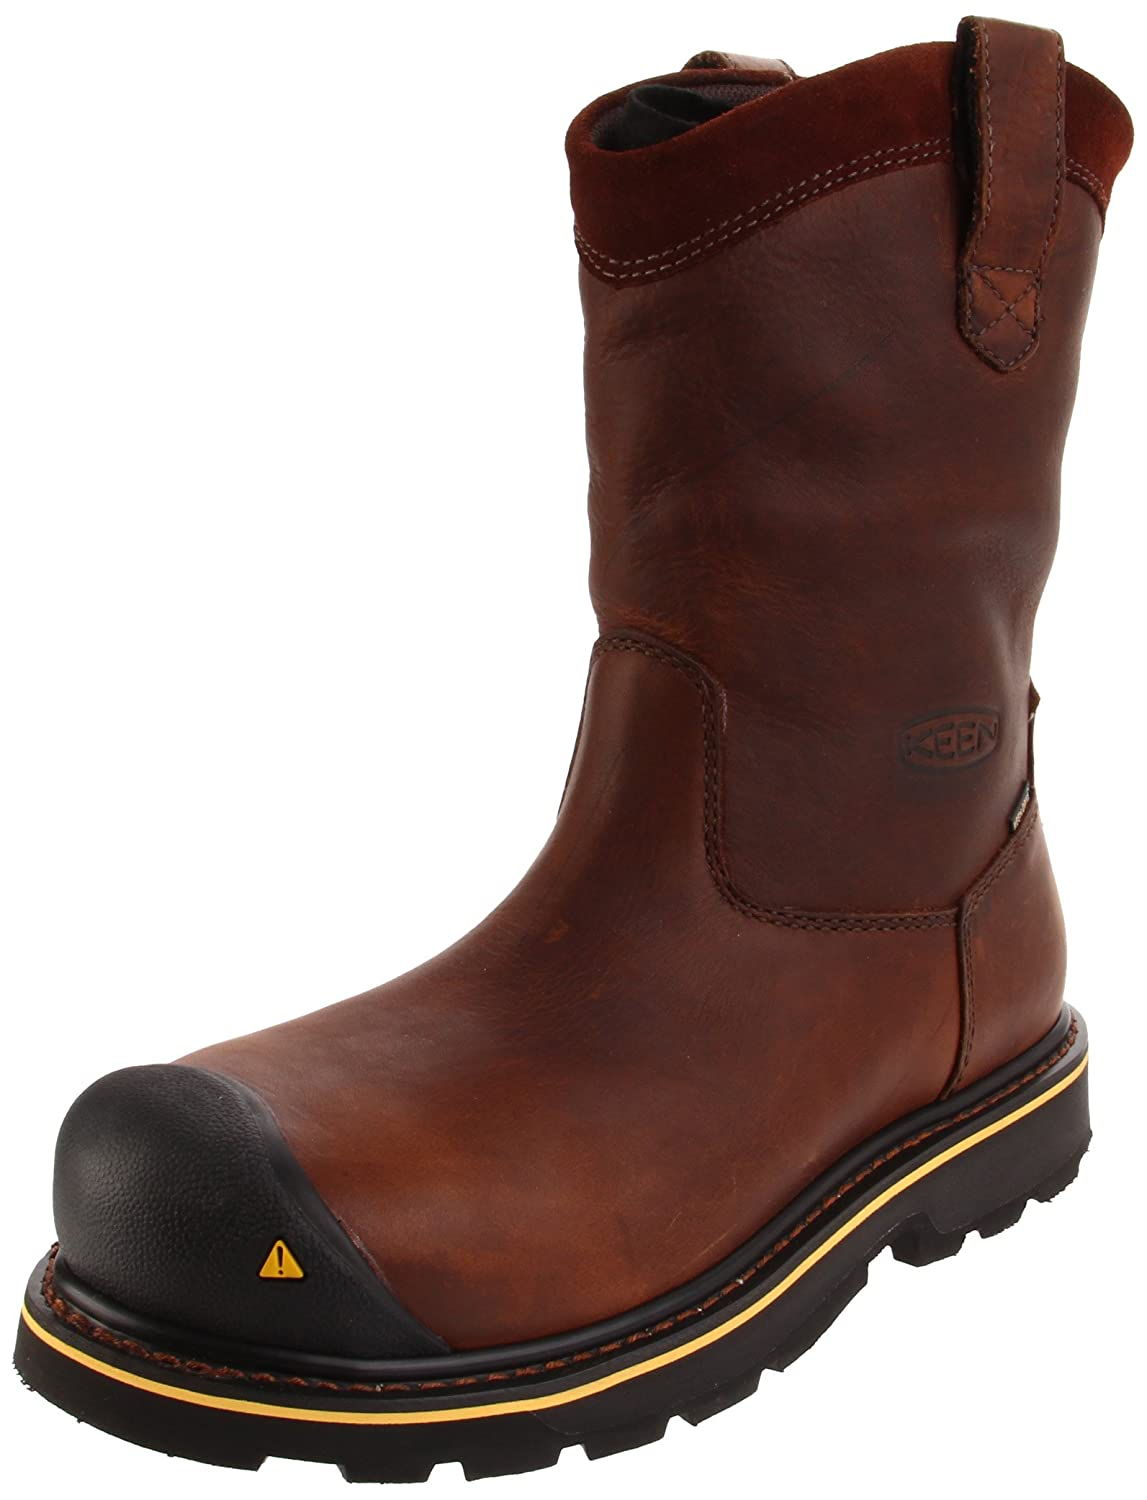 Steel Toe Work Boots For Men Cheap Yu Boots